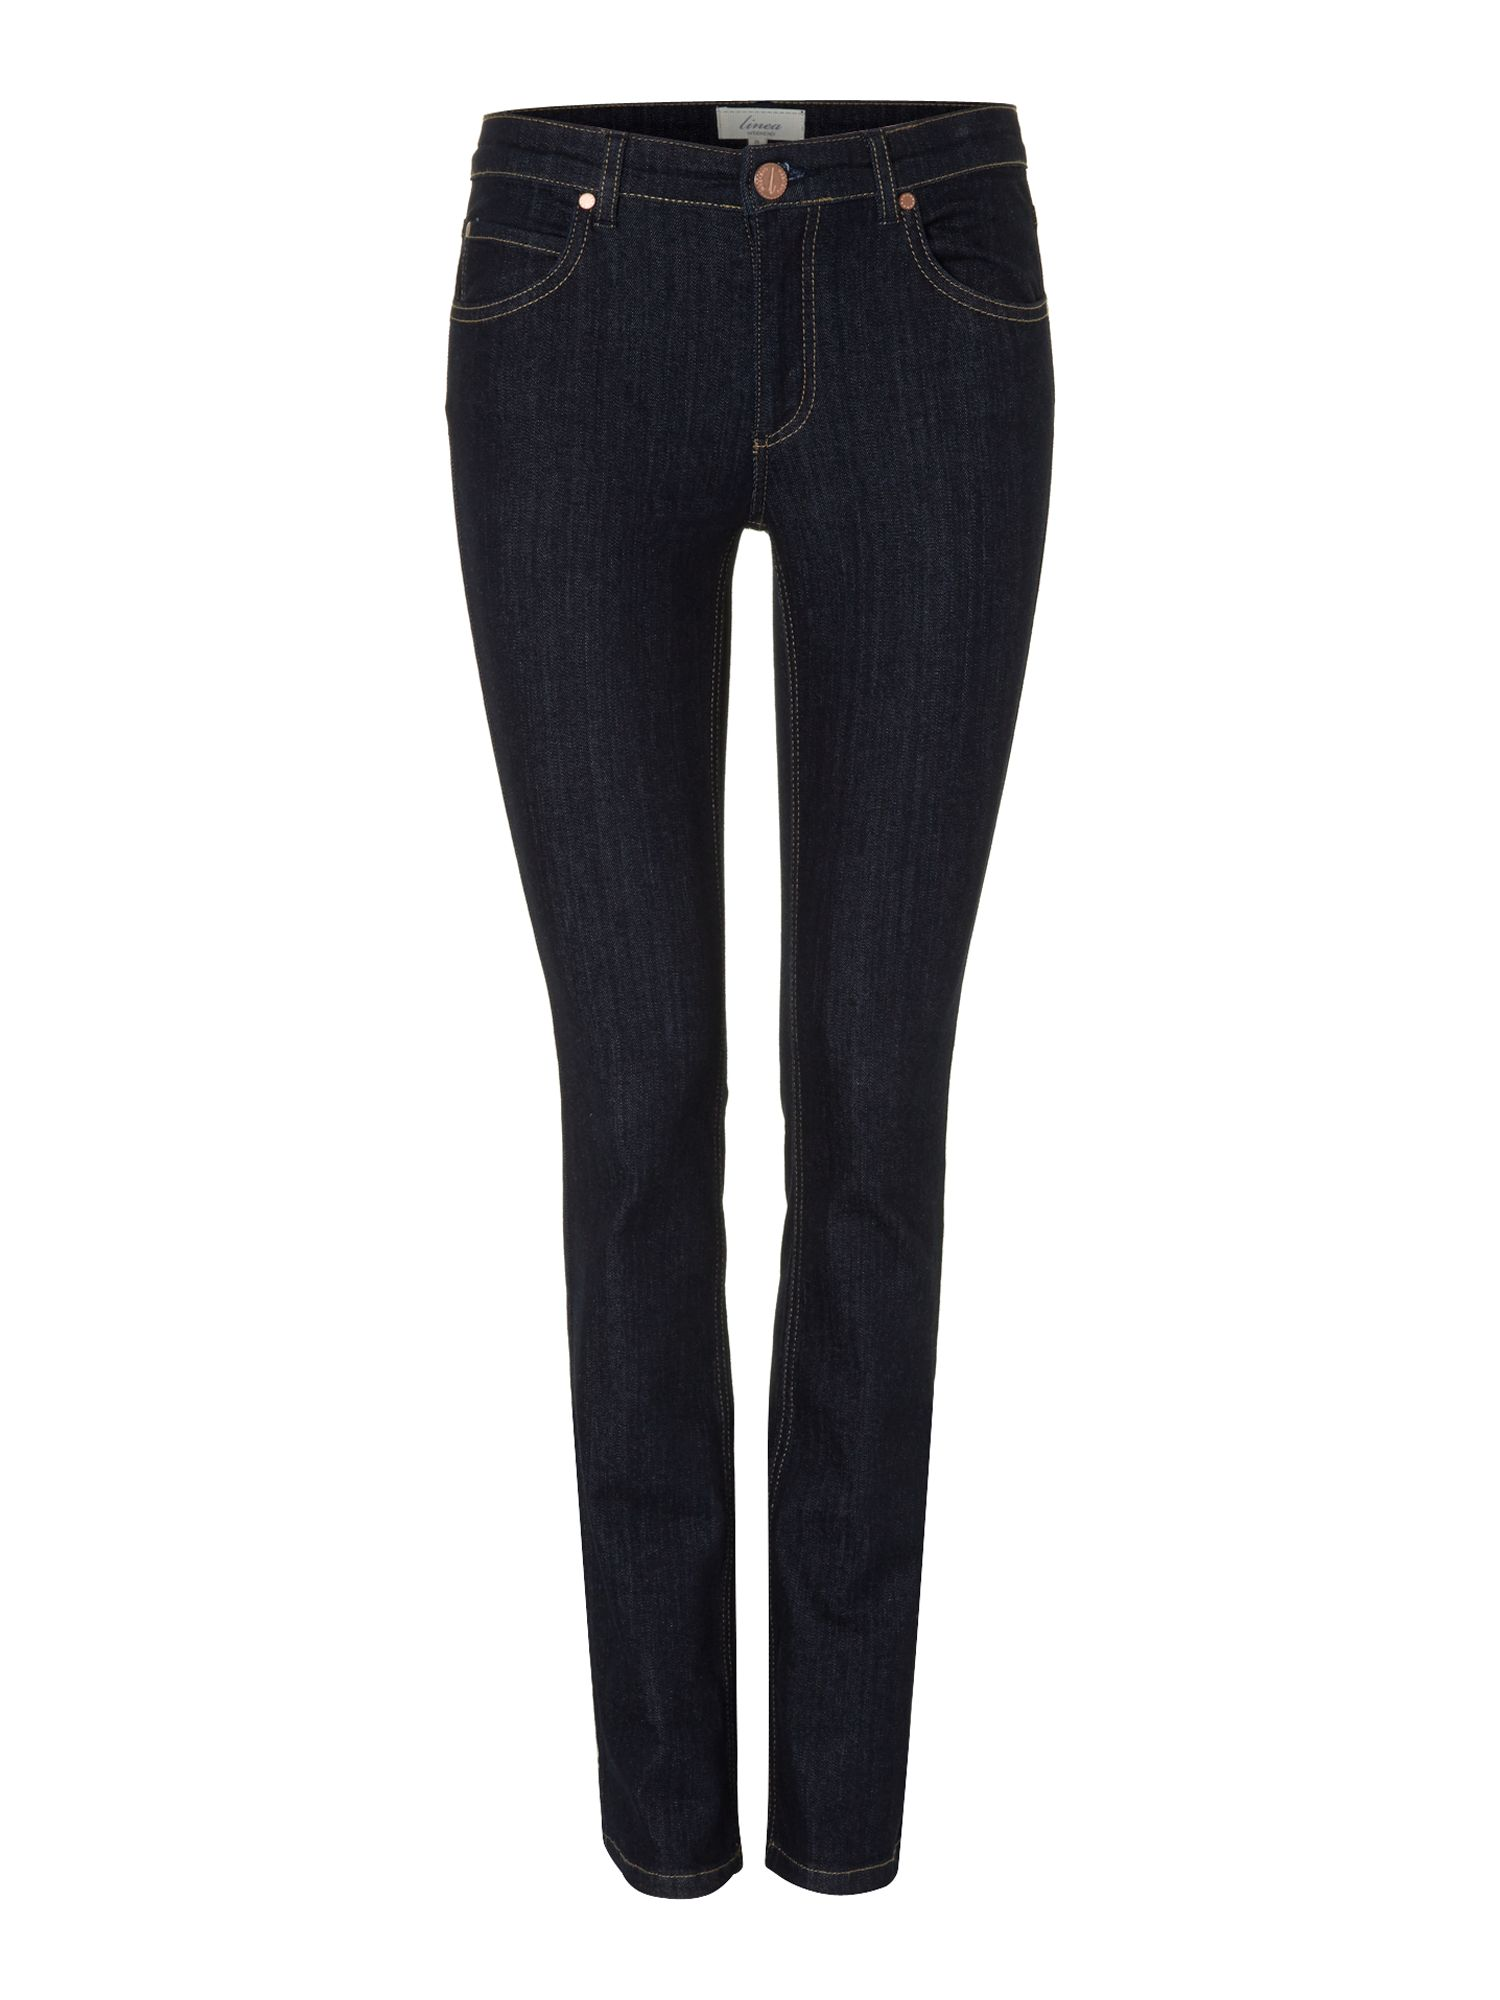 Ladies straight leg indigo wash jeans